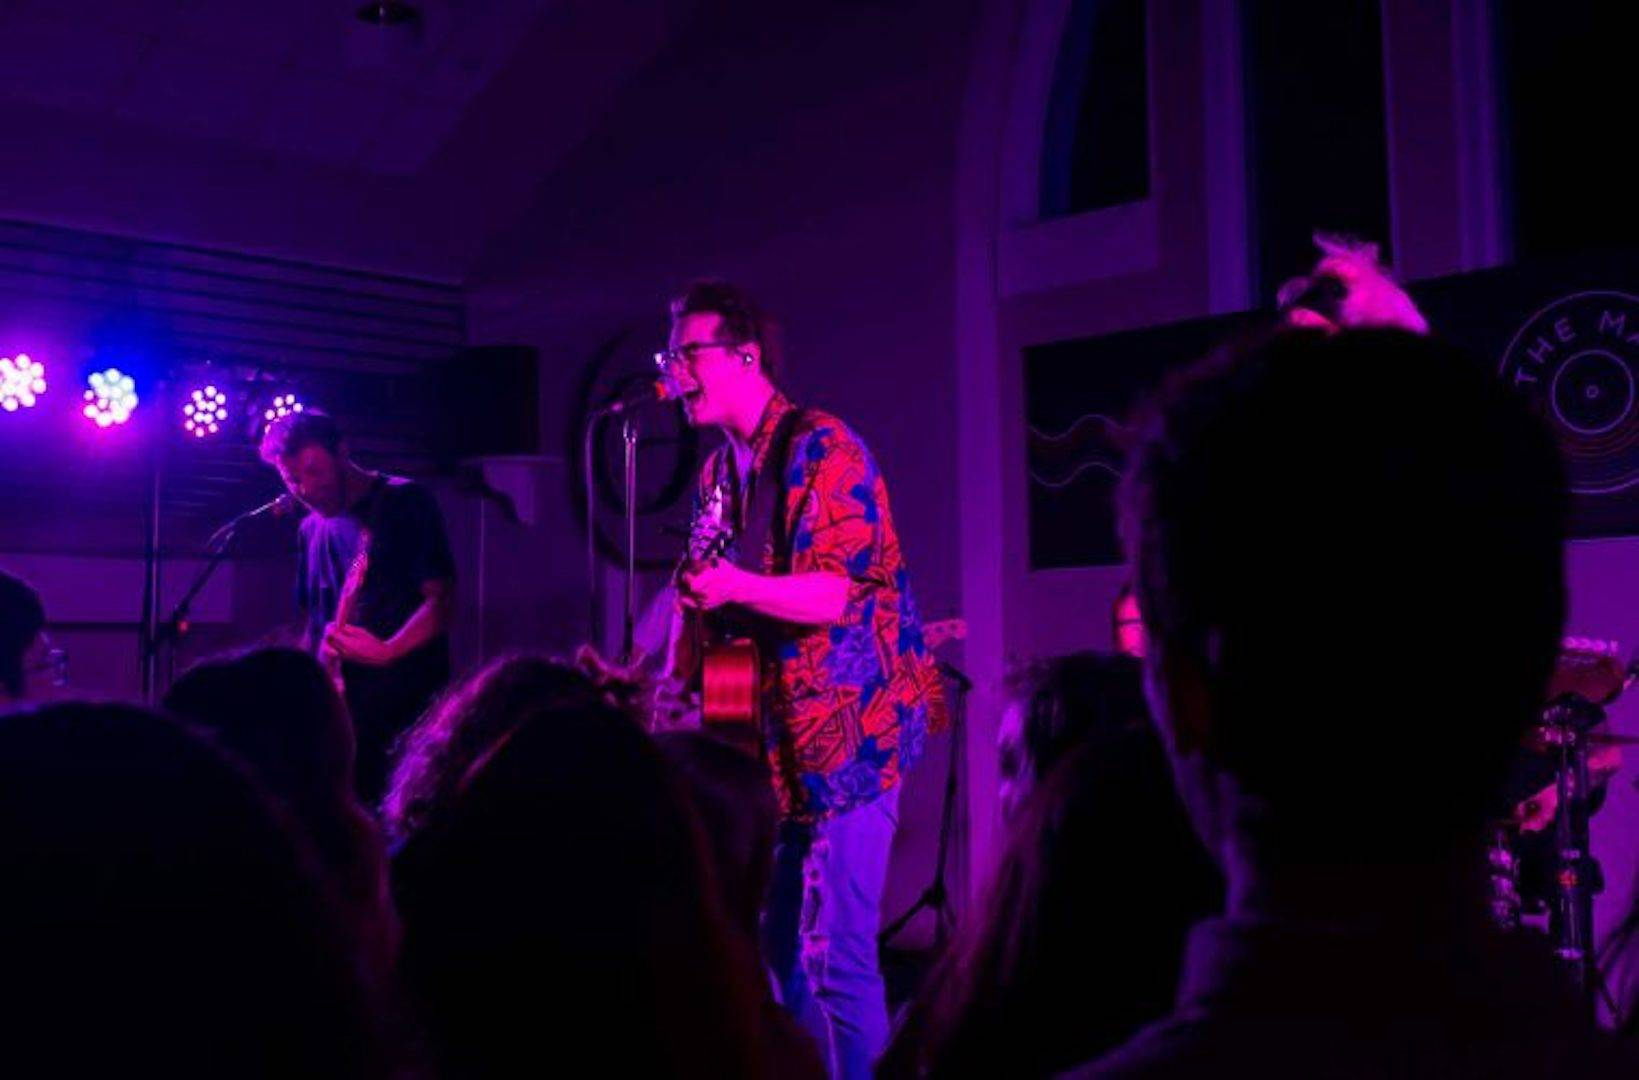 Male singer sings into mic during an intimate, darkly lit pop-rock performance